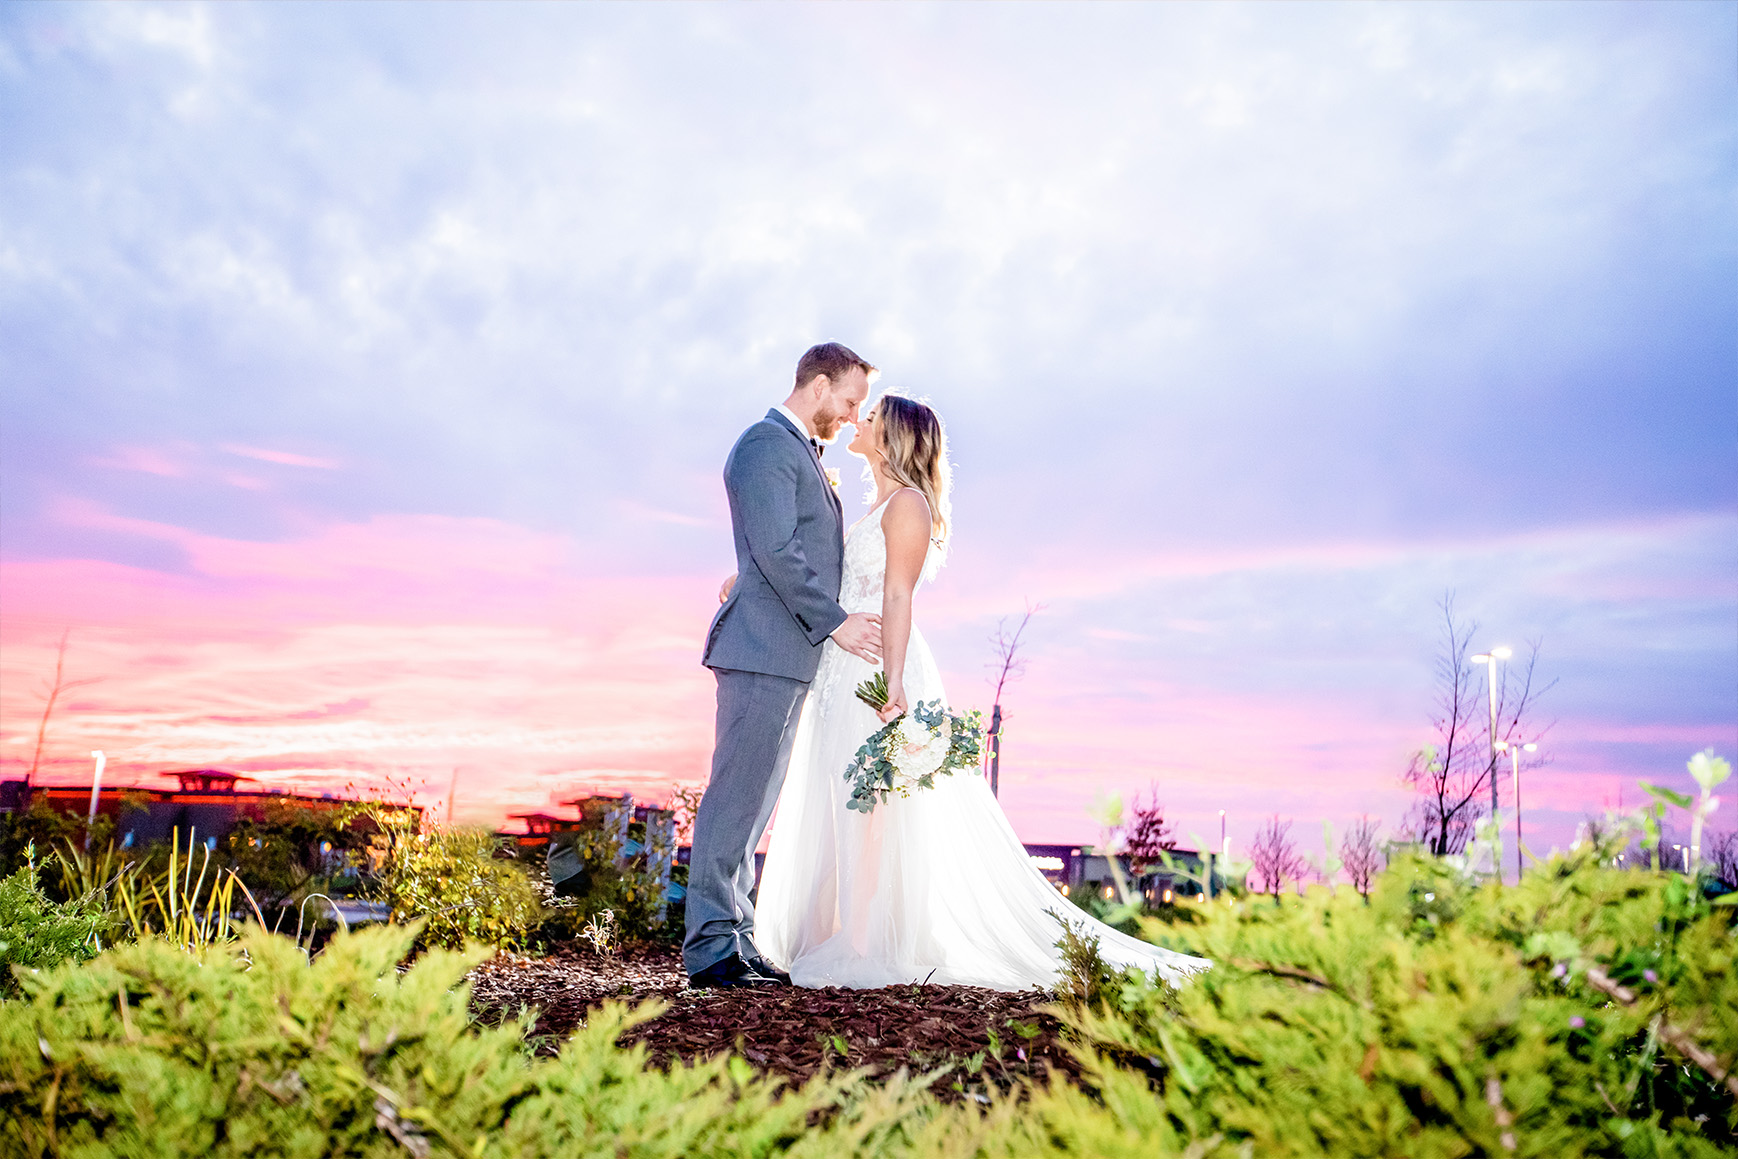 Bride and Groom at sunset - Union Brick - Roseville, California, Placer County - Wedgewood Weddings